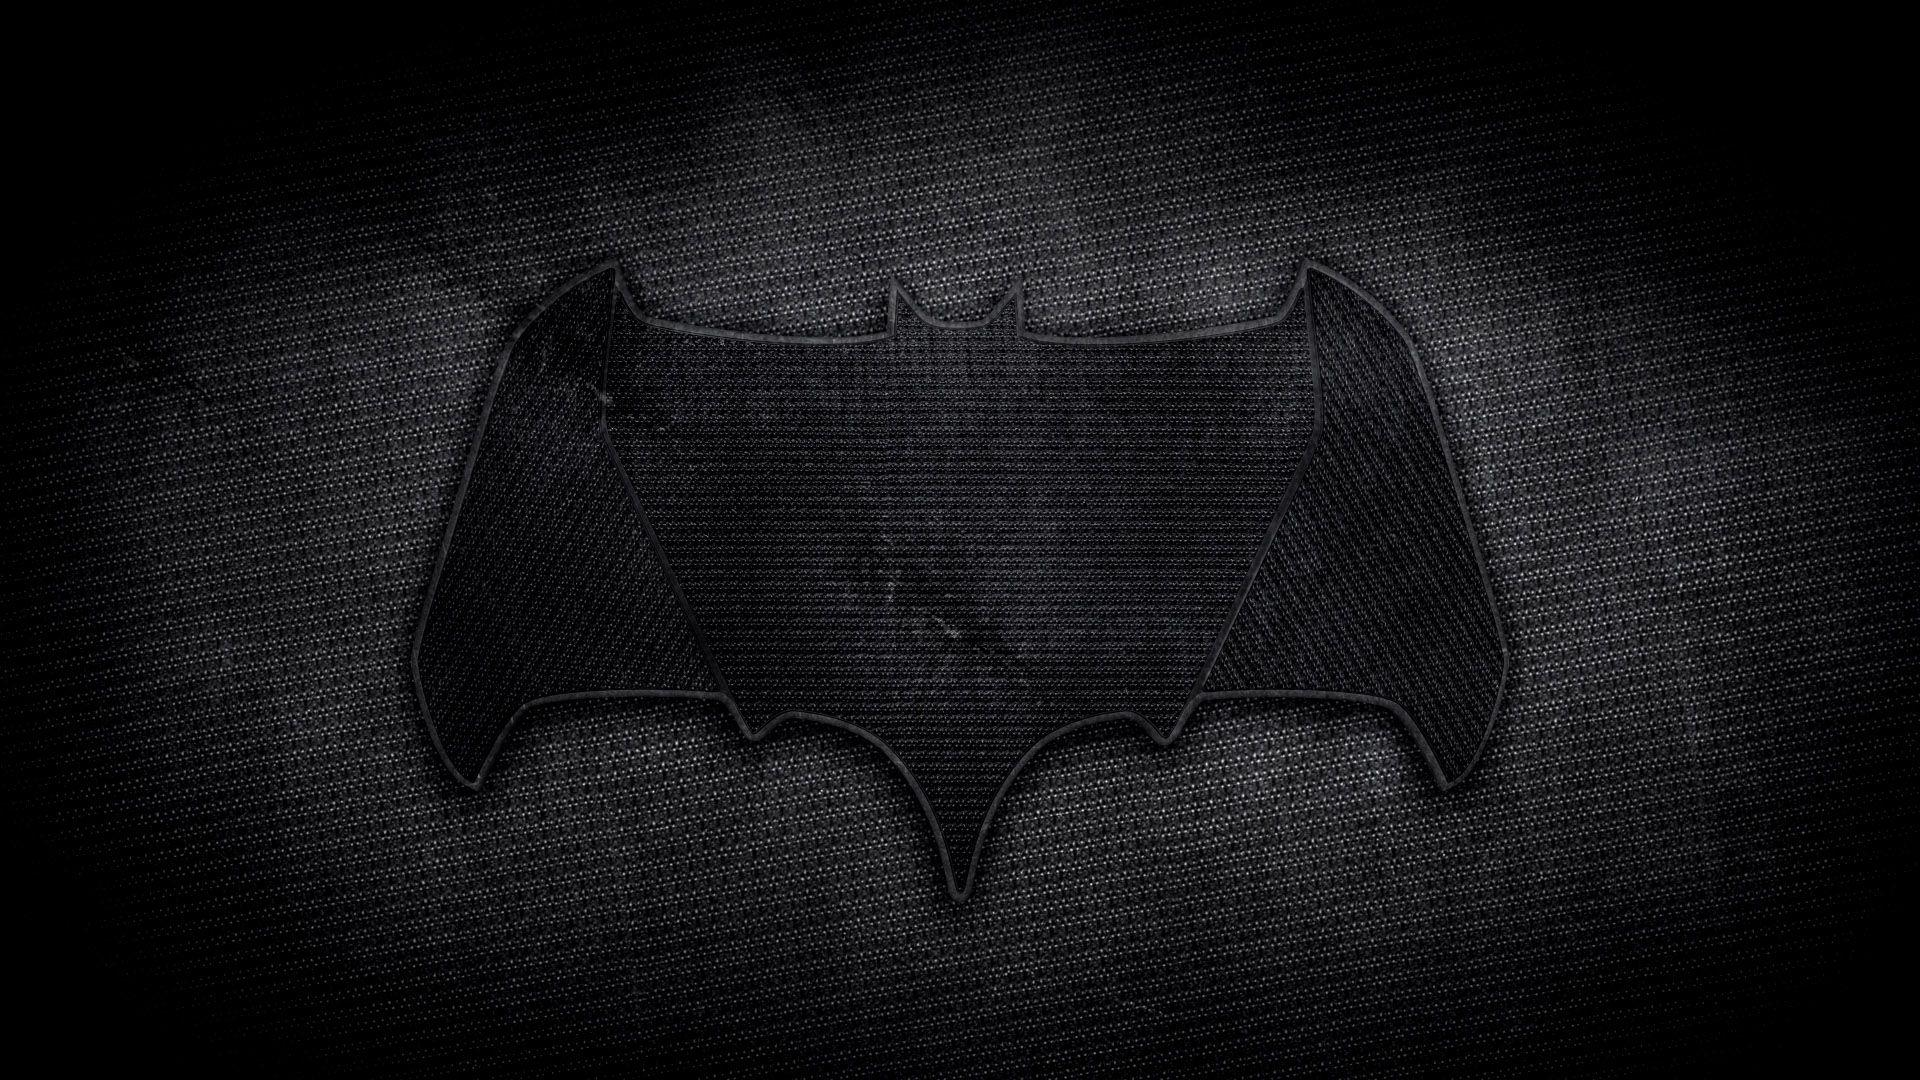 50 Batman Logo Wallpapers For Free Download HD 1080p